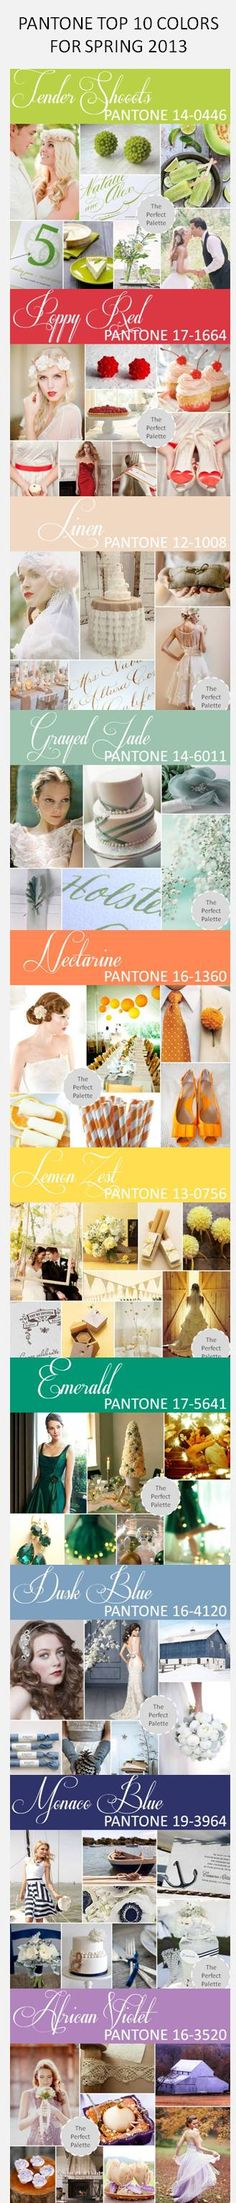 PANTONE TOP 10 COLORS FOR SPRING 2013